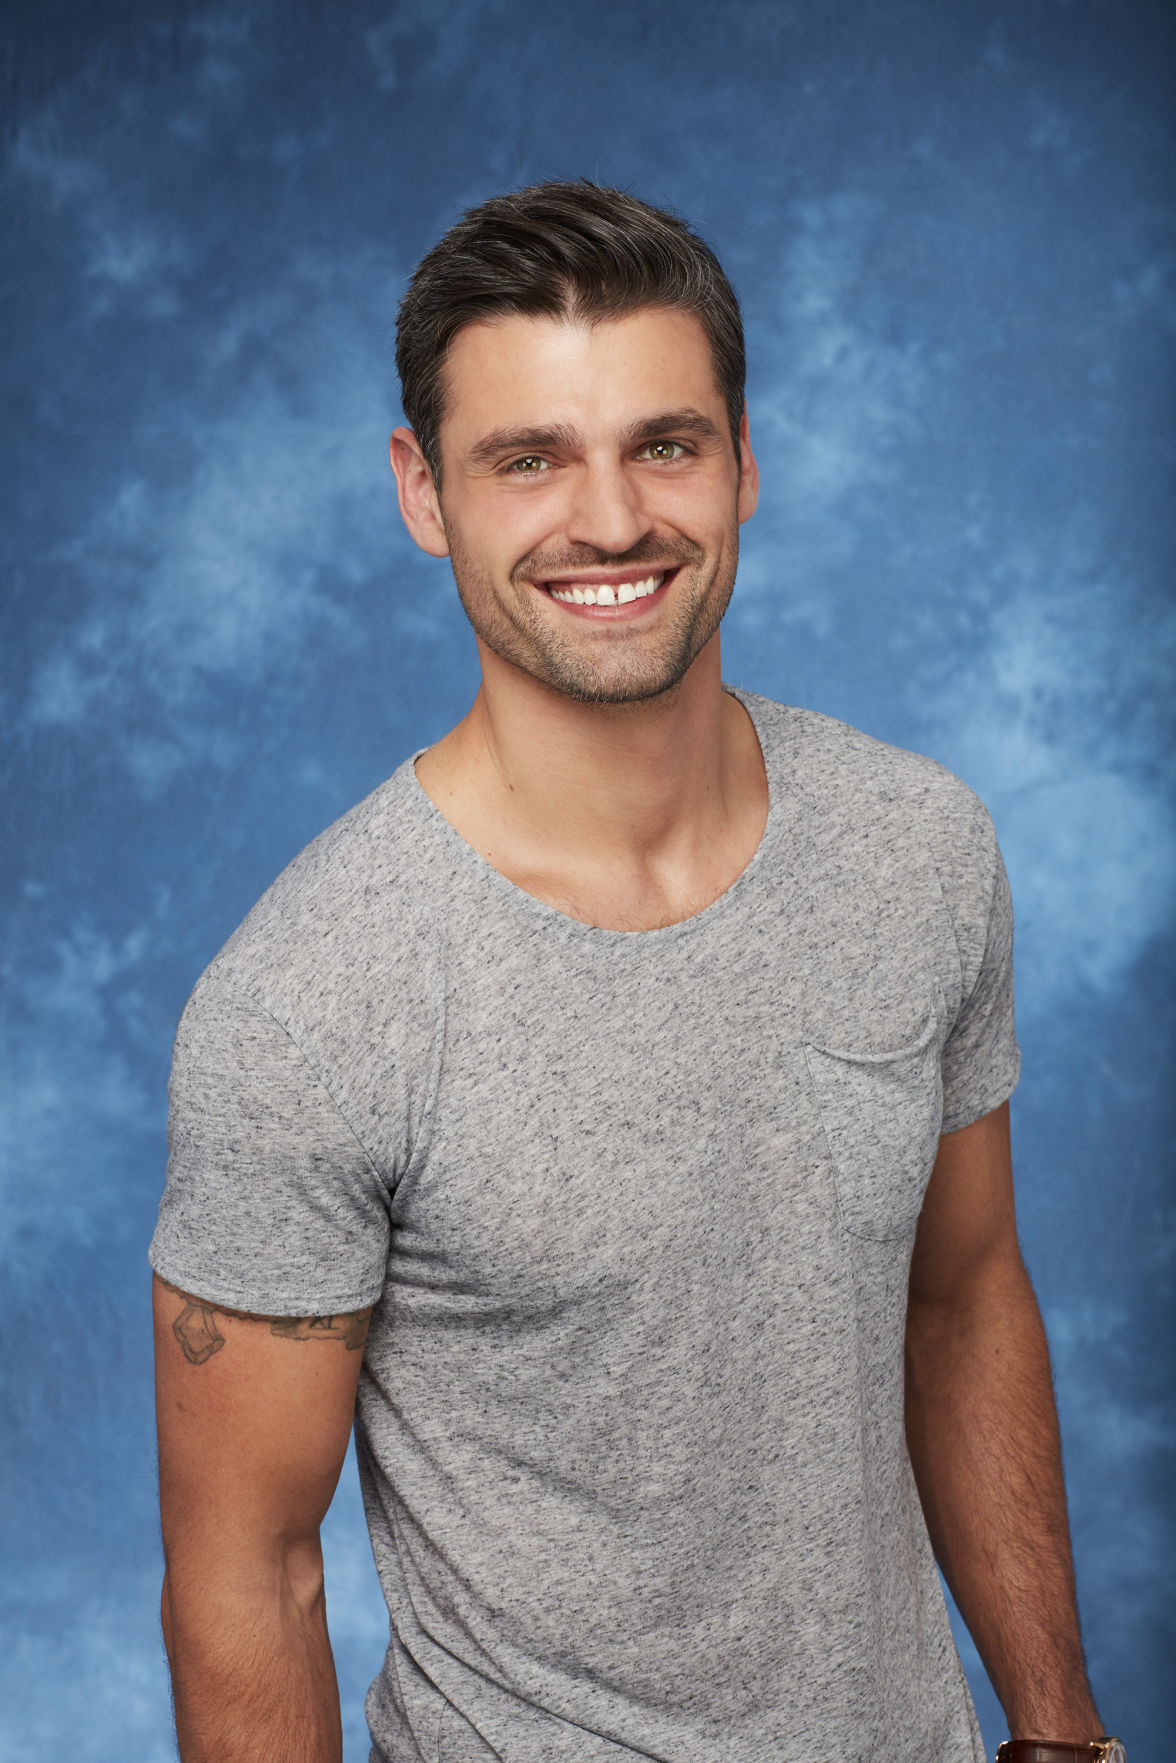 Madison Native Peter Kraus Did Not Bring Home The Final Rose Monday On Bachelorettes Season Finale